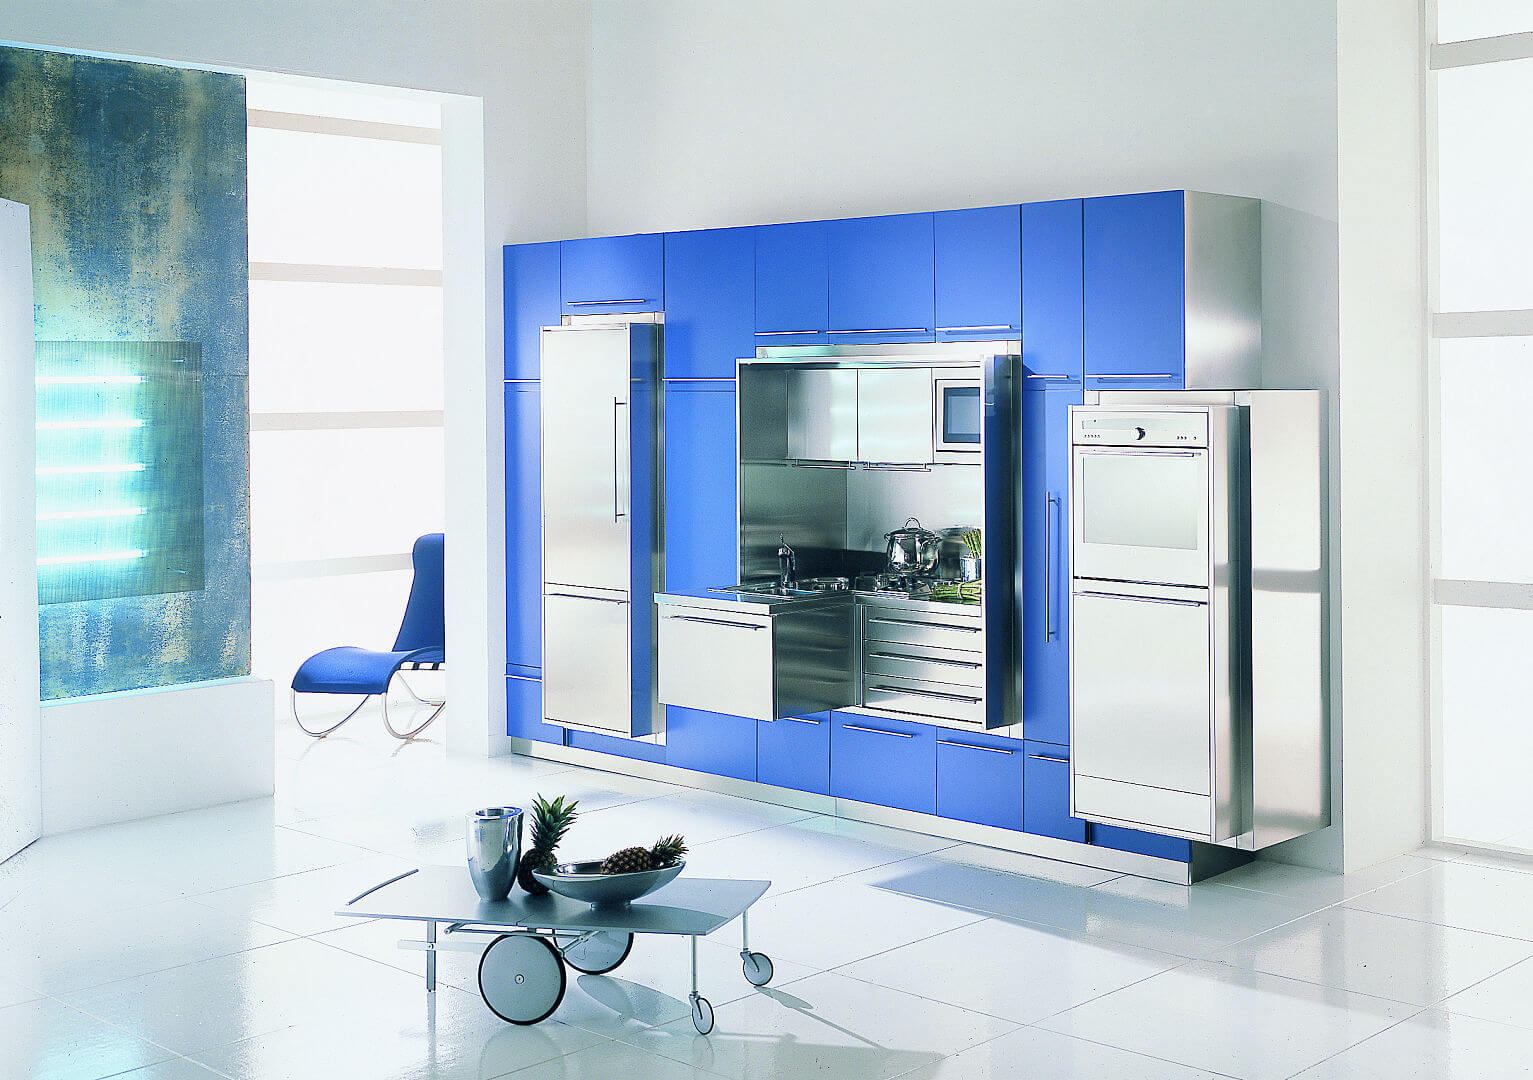 Arca Cucine Italy - Domestic stainless steel kitchens - Wall - suspended